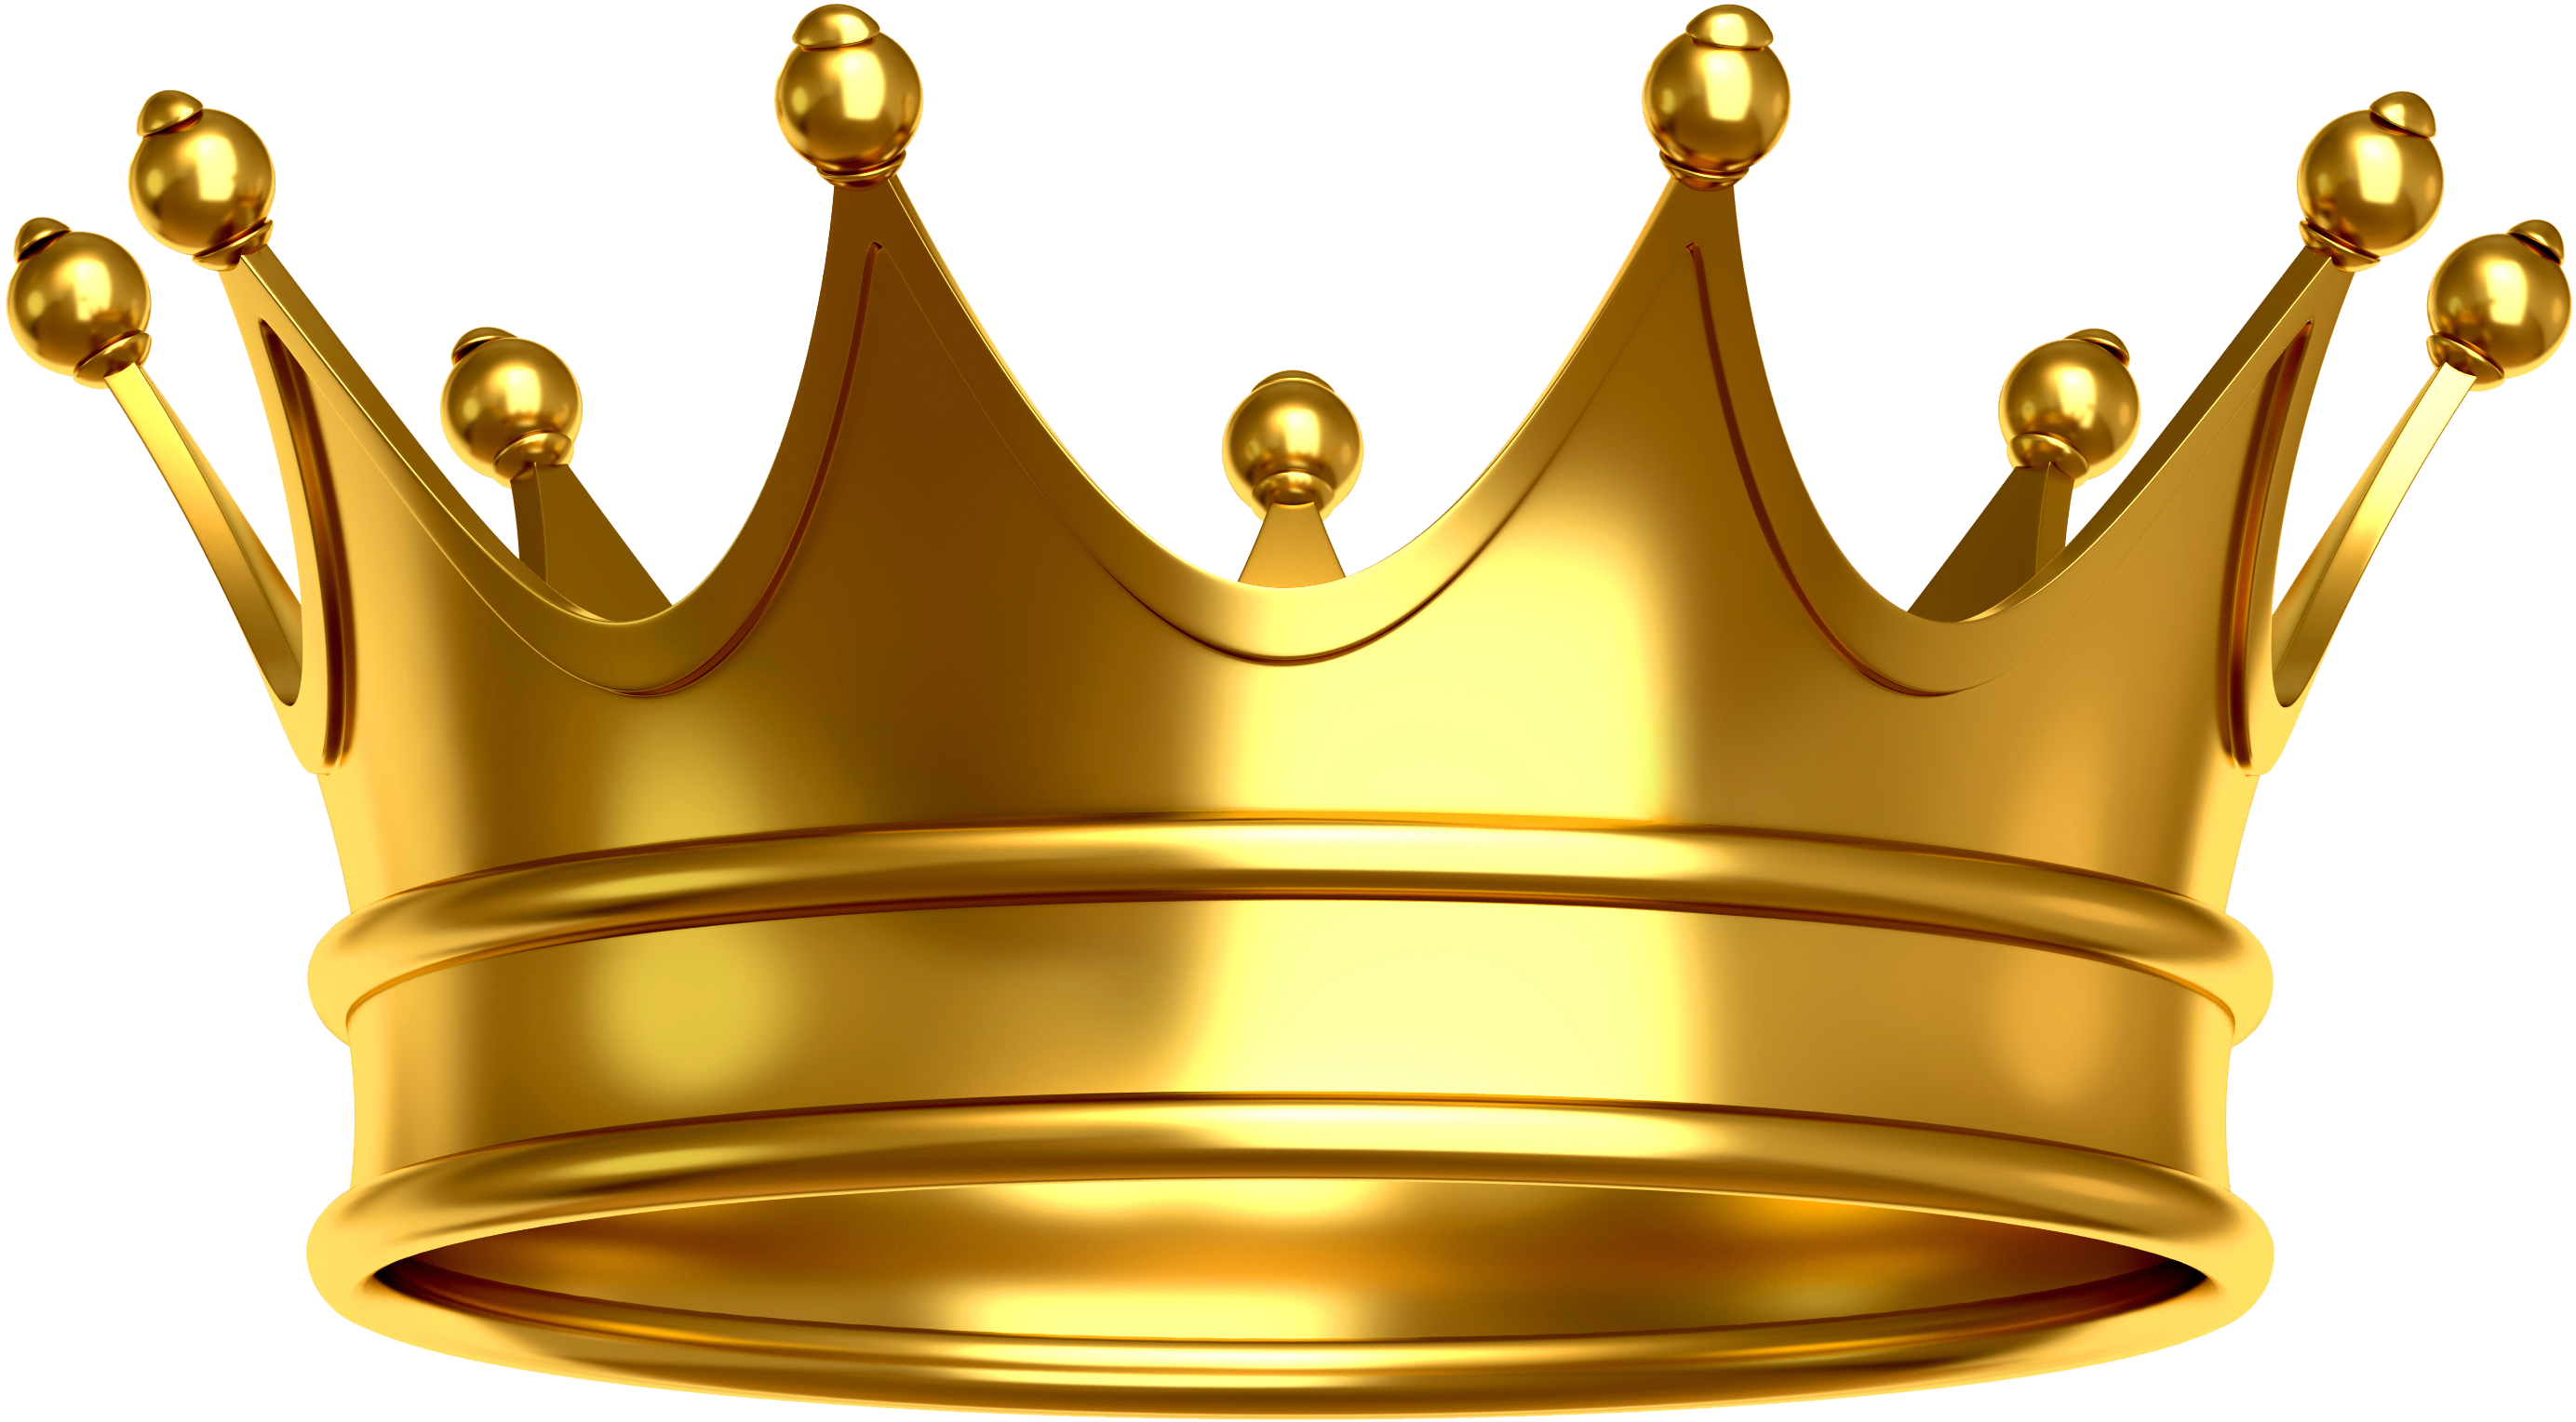 King crown transparent png. Hd images pluspng image